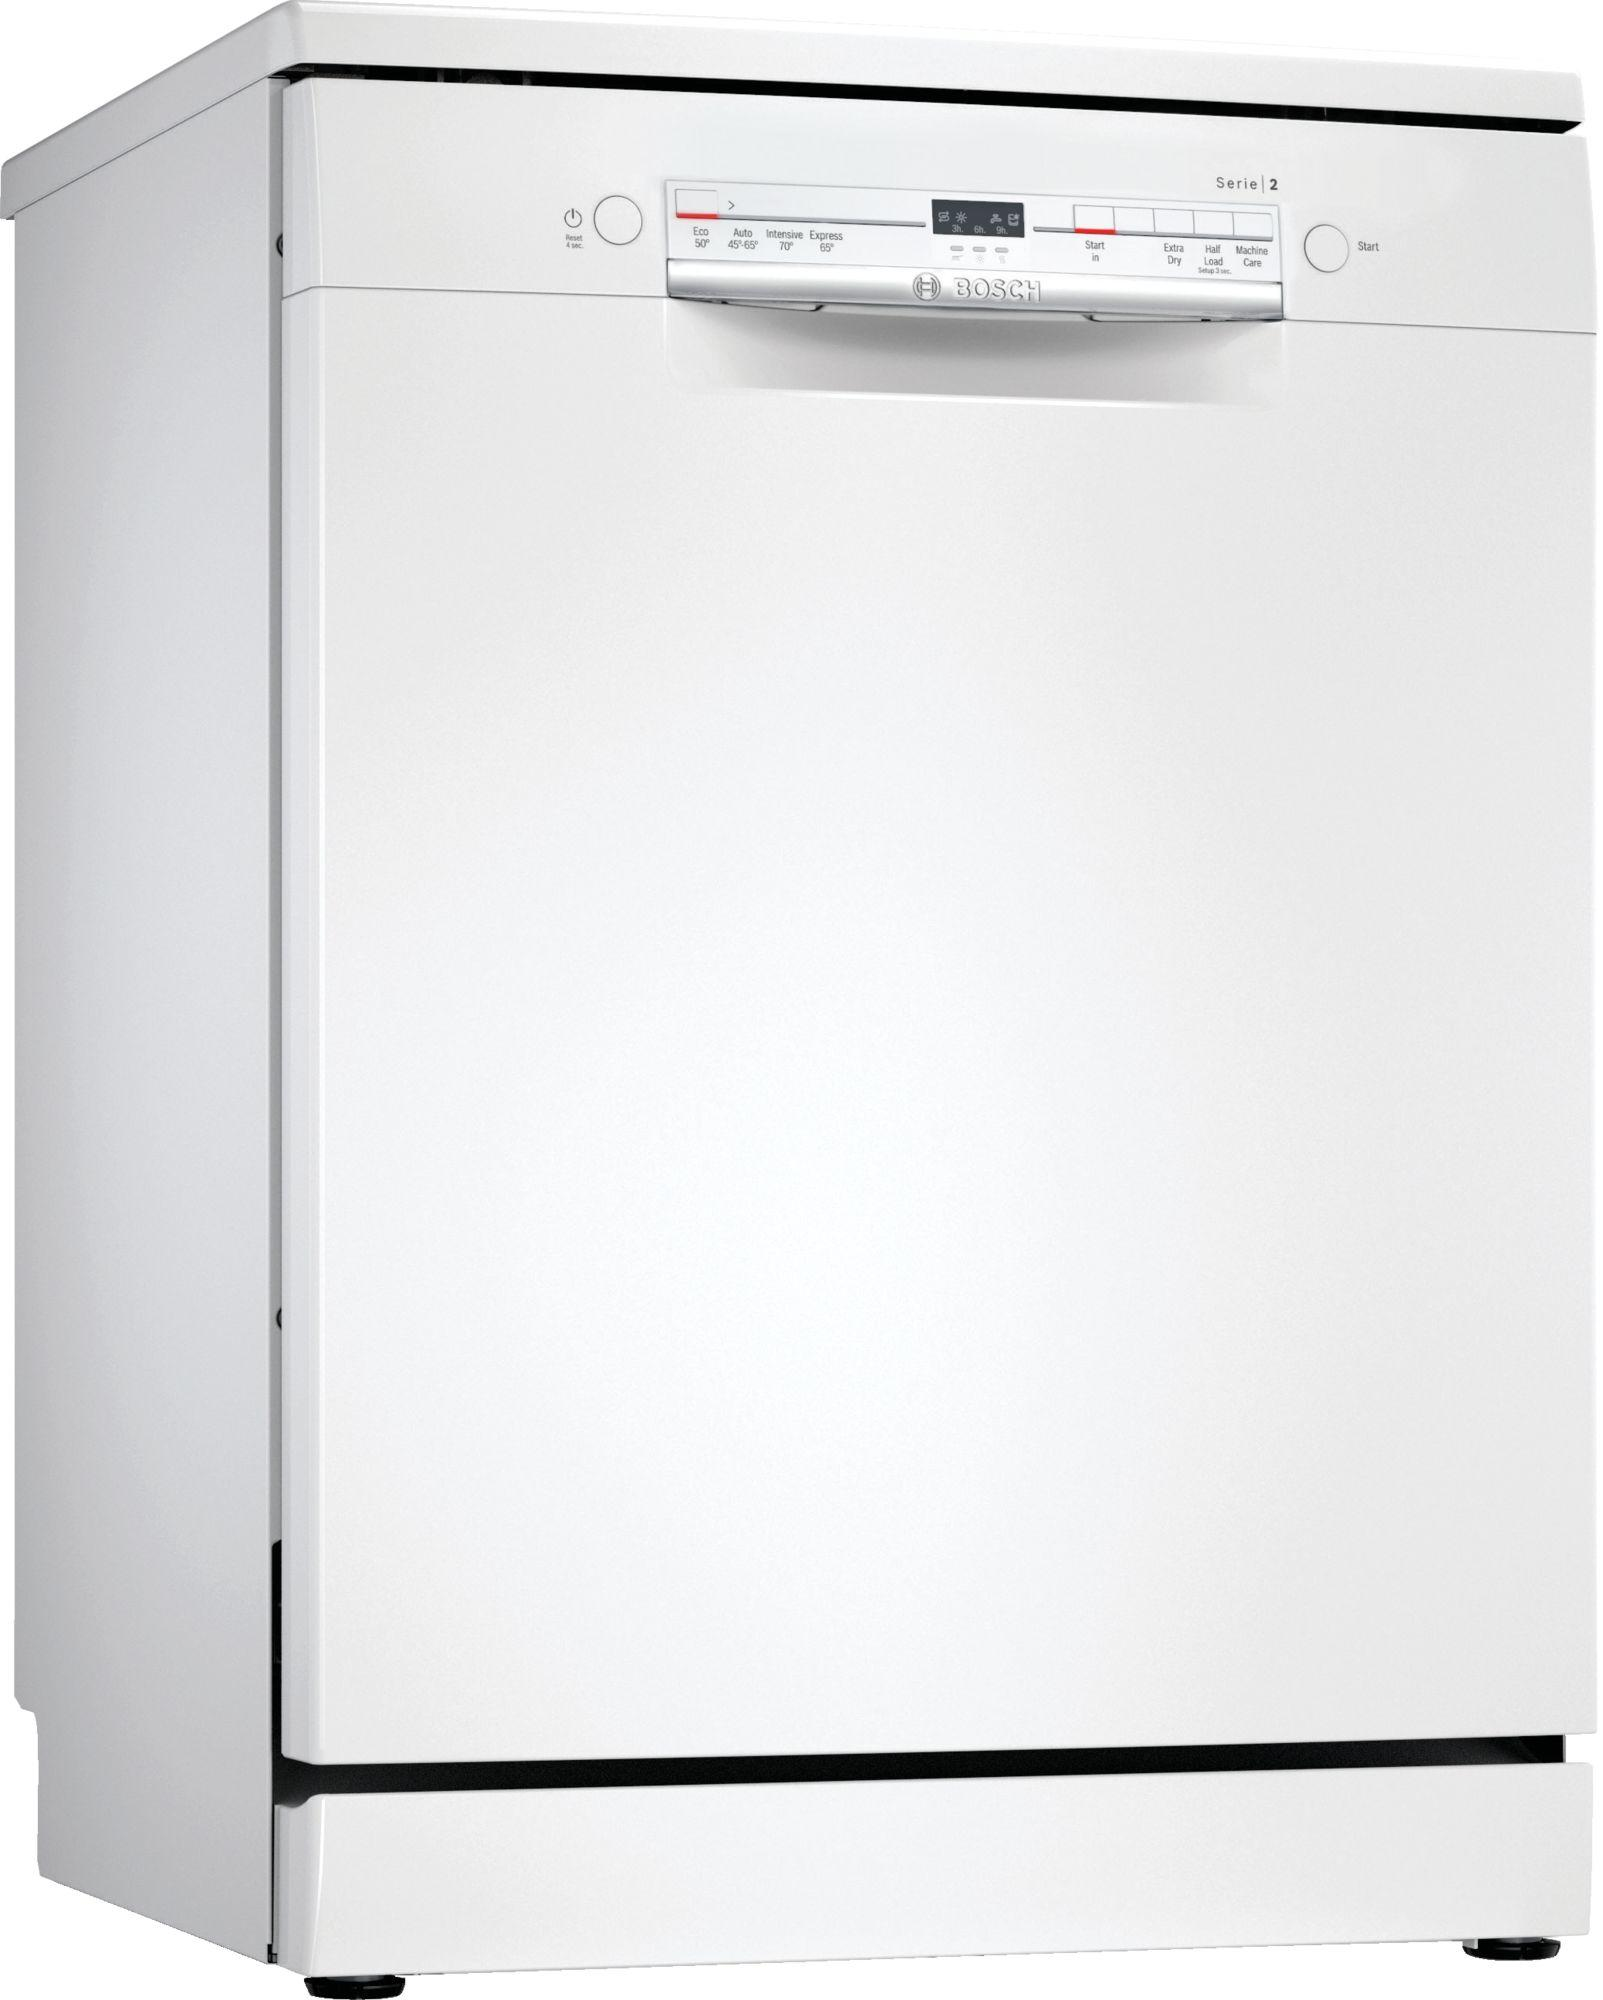 Image of Serie 2 SGS2ITW08G 60cm Standard Dishwasher | White